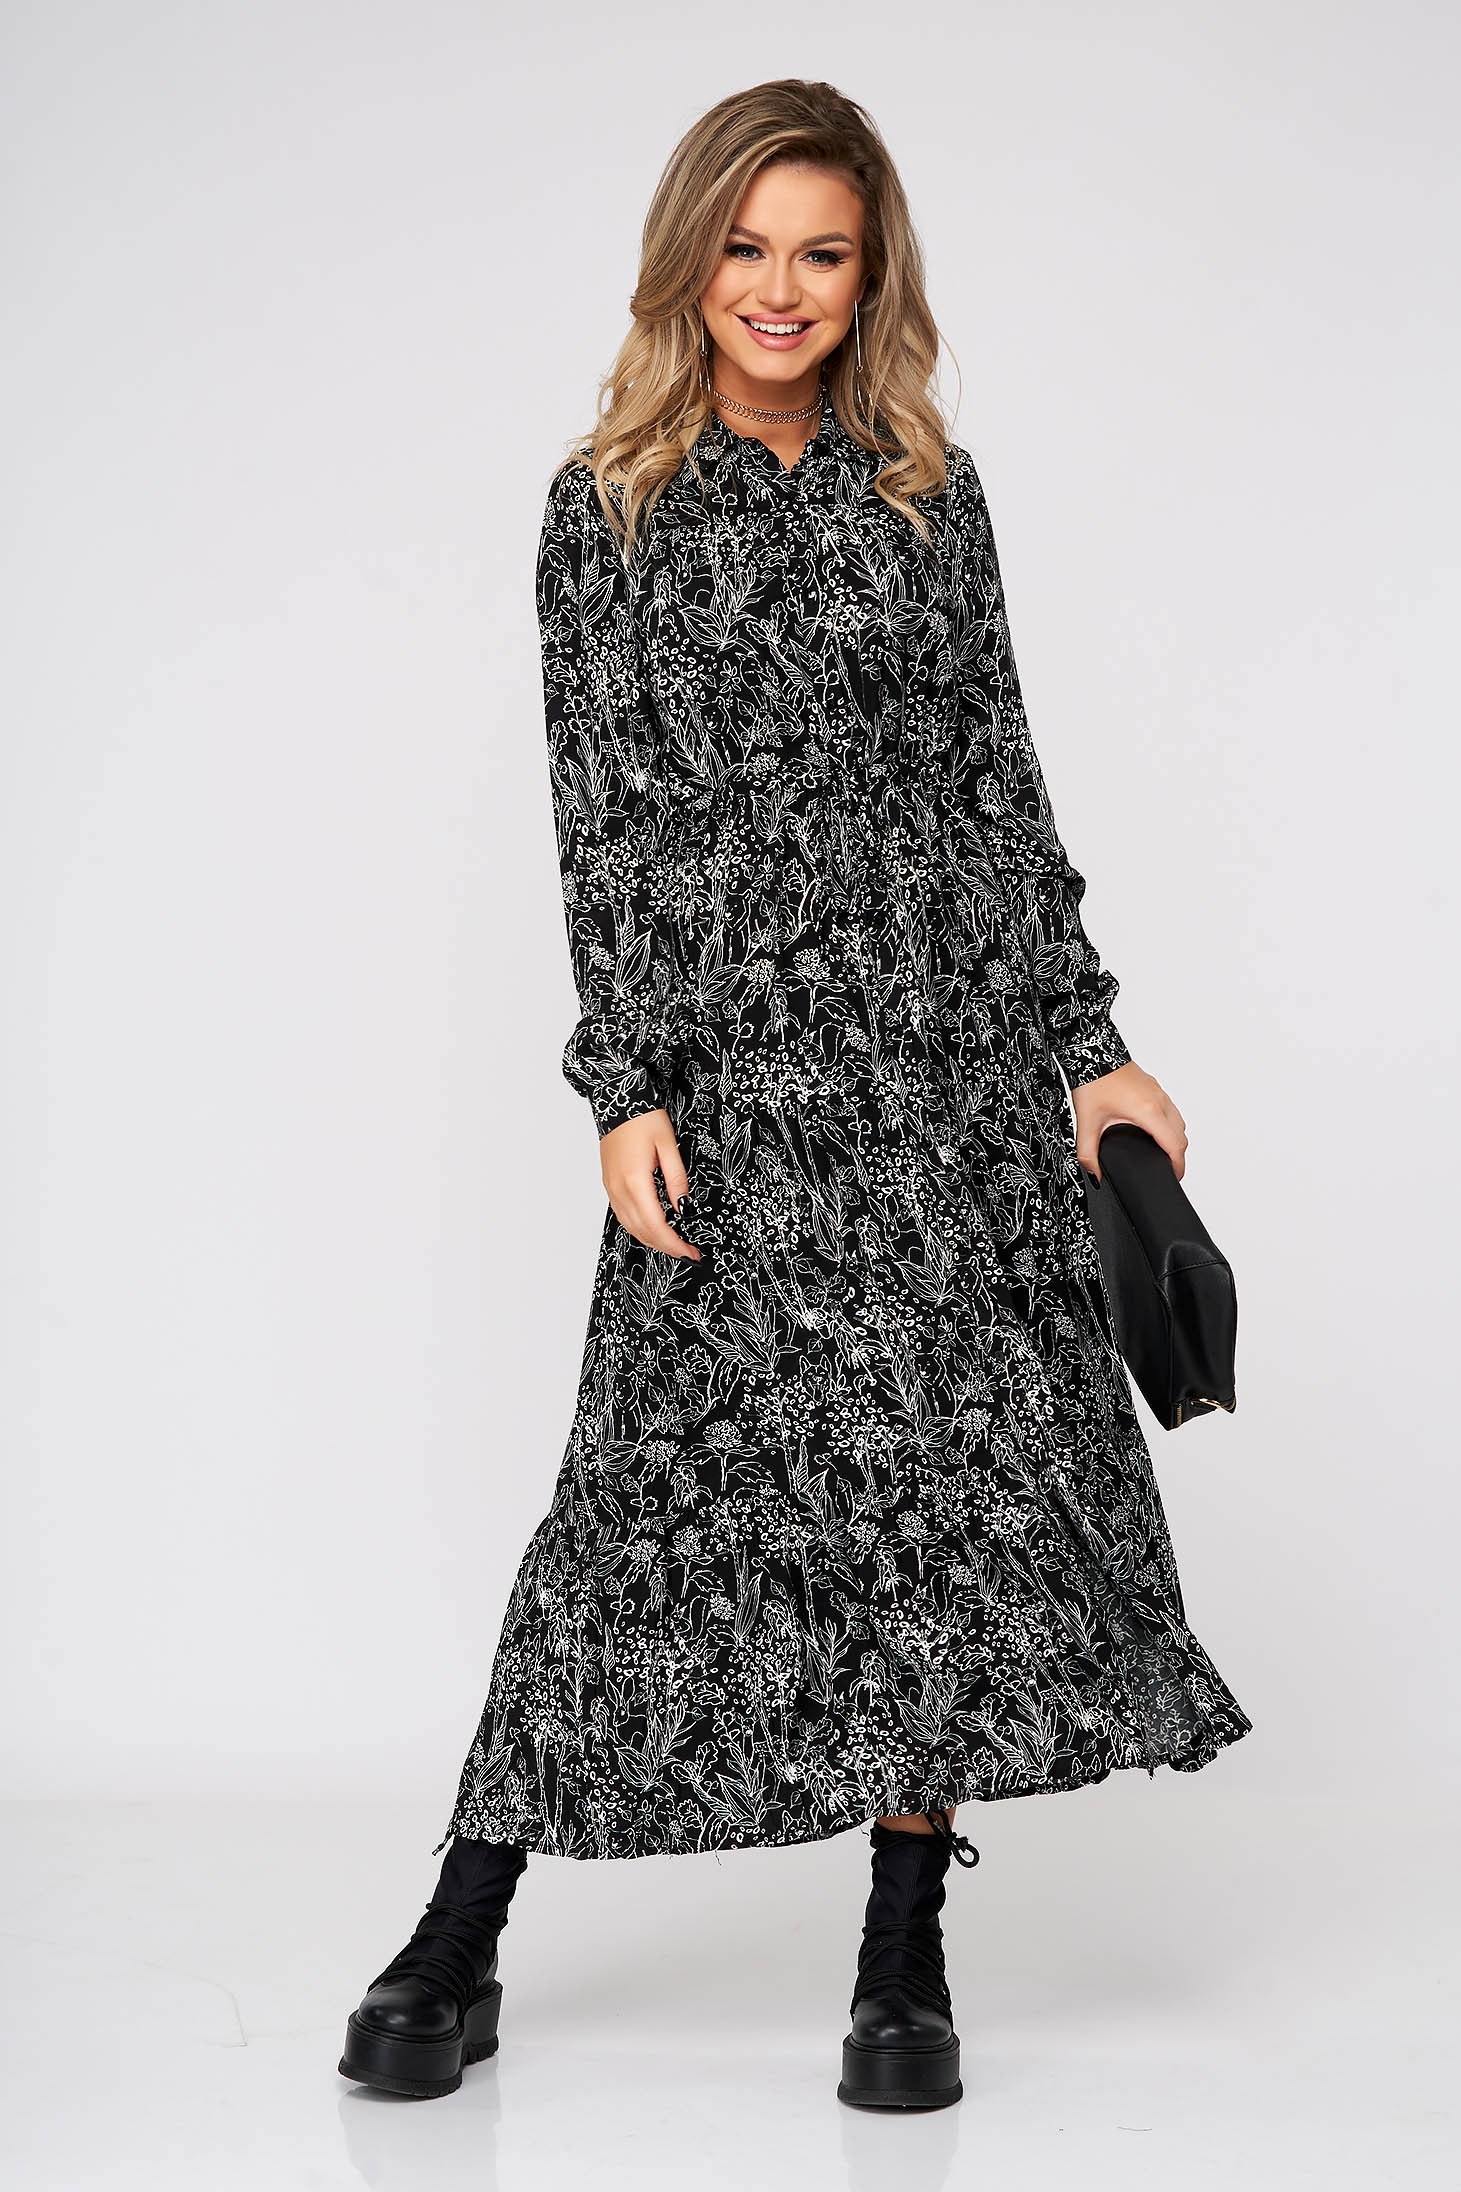 Dress long daily airy fabric with easy cut long sleeved